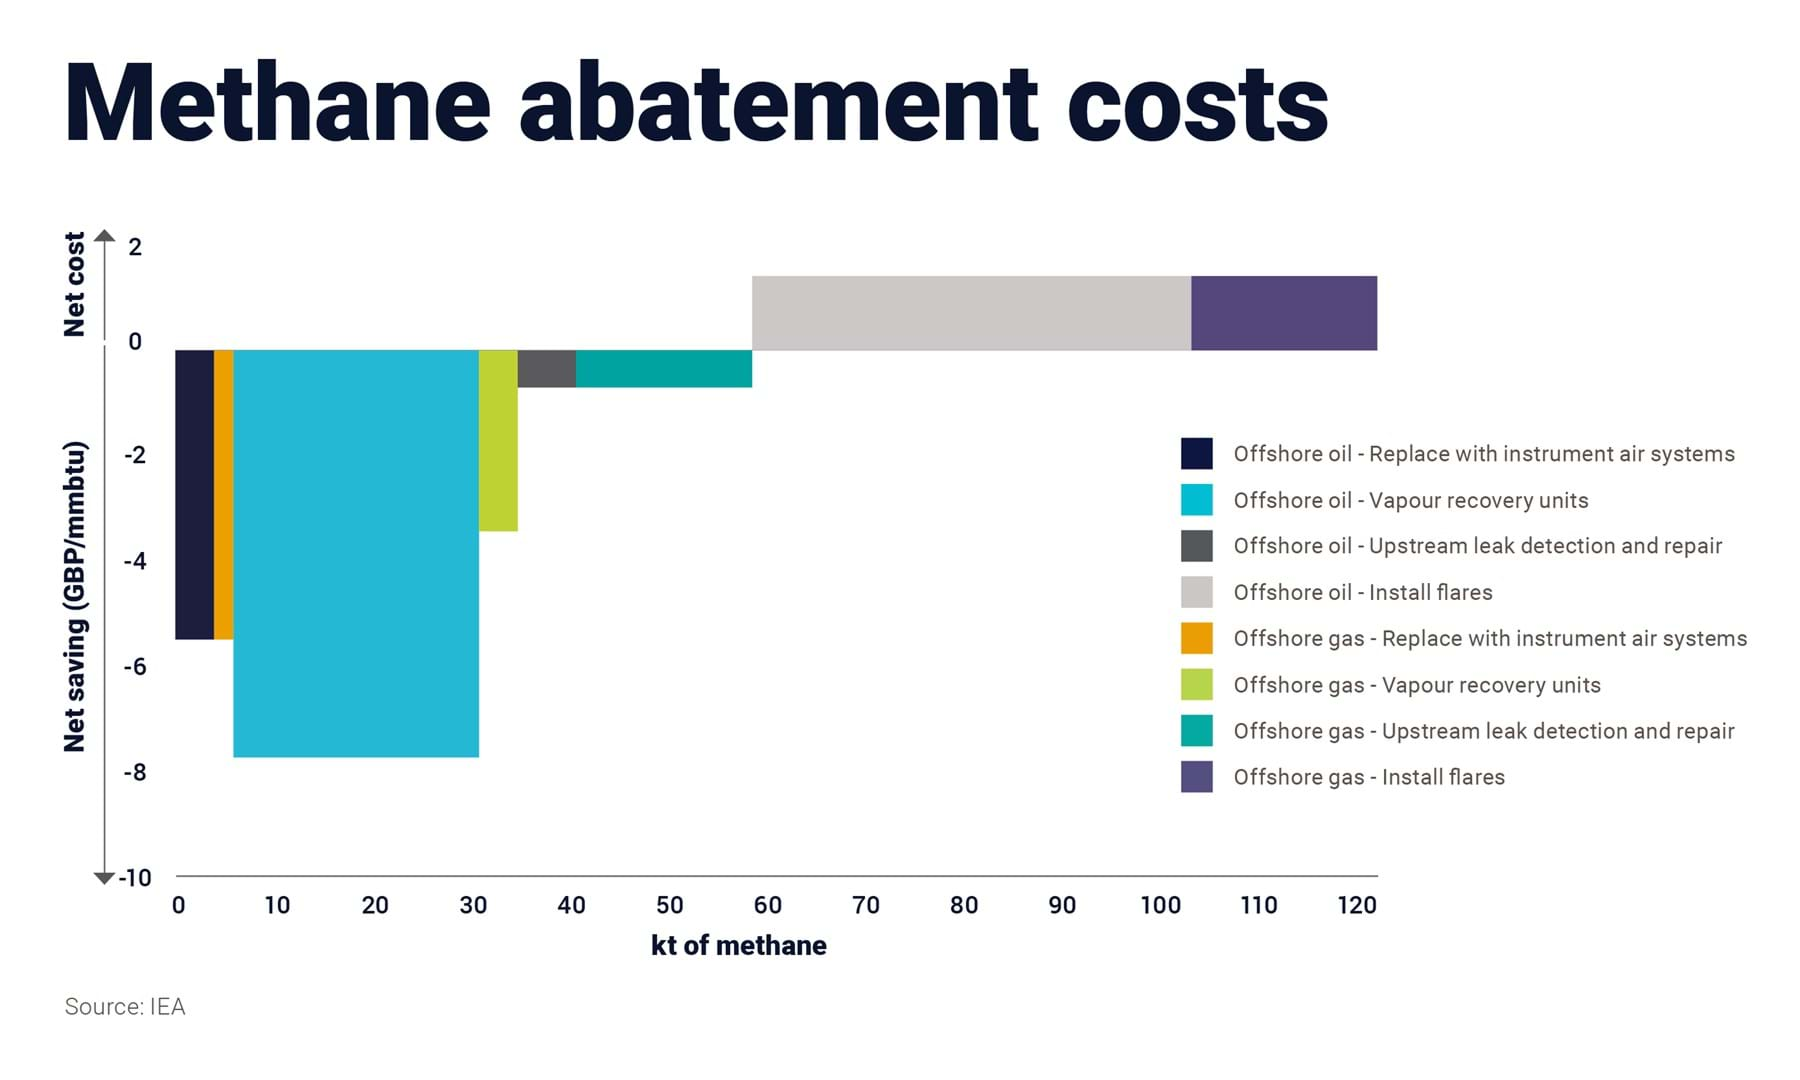 Graphic shows methane abatement costs